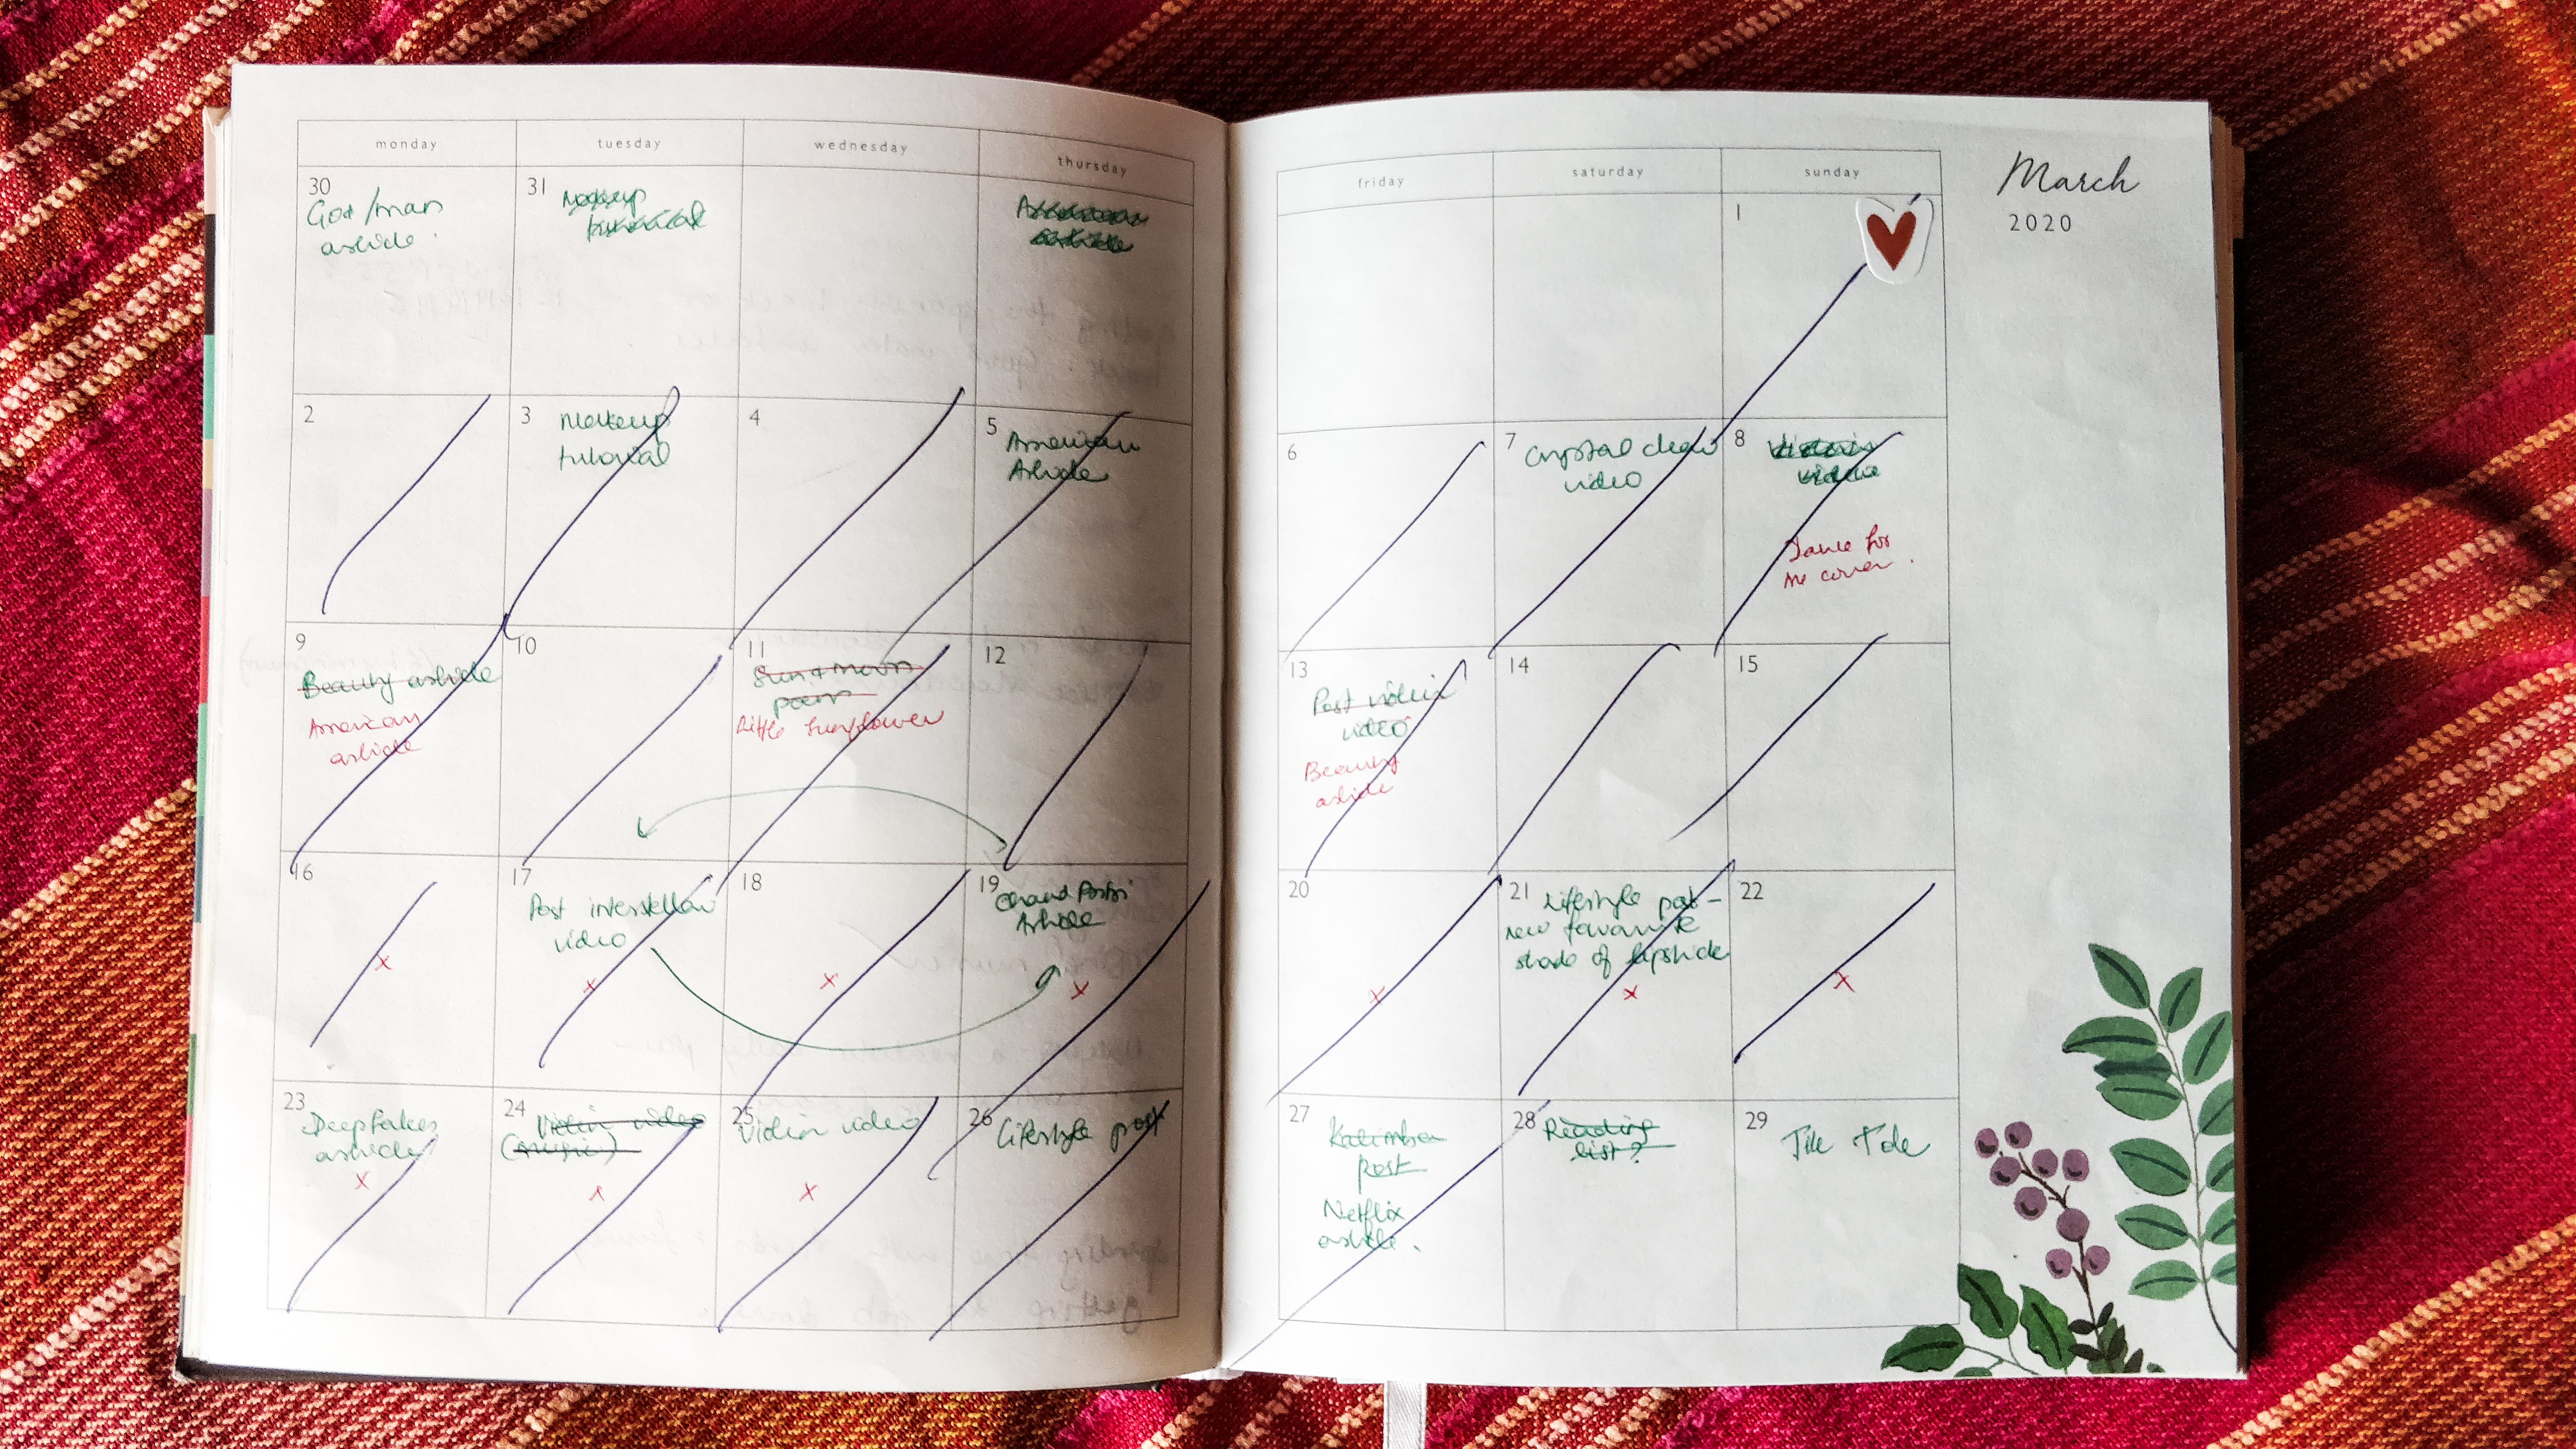 A glimpse at an old content calendar. It's ok for a plan to change, as long as you stick to it